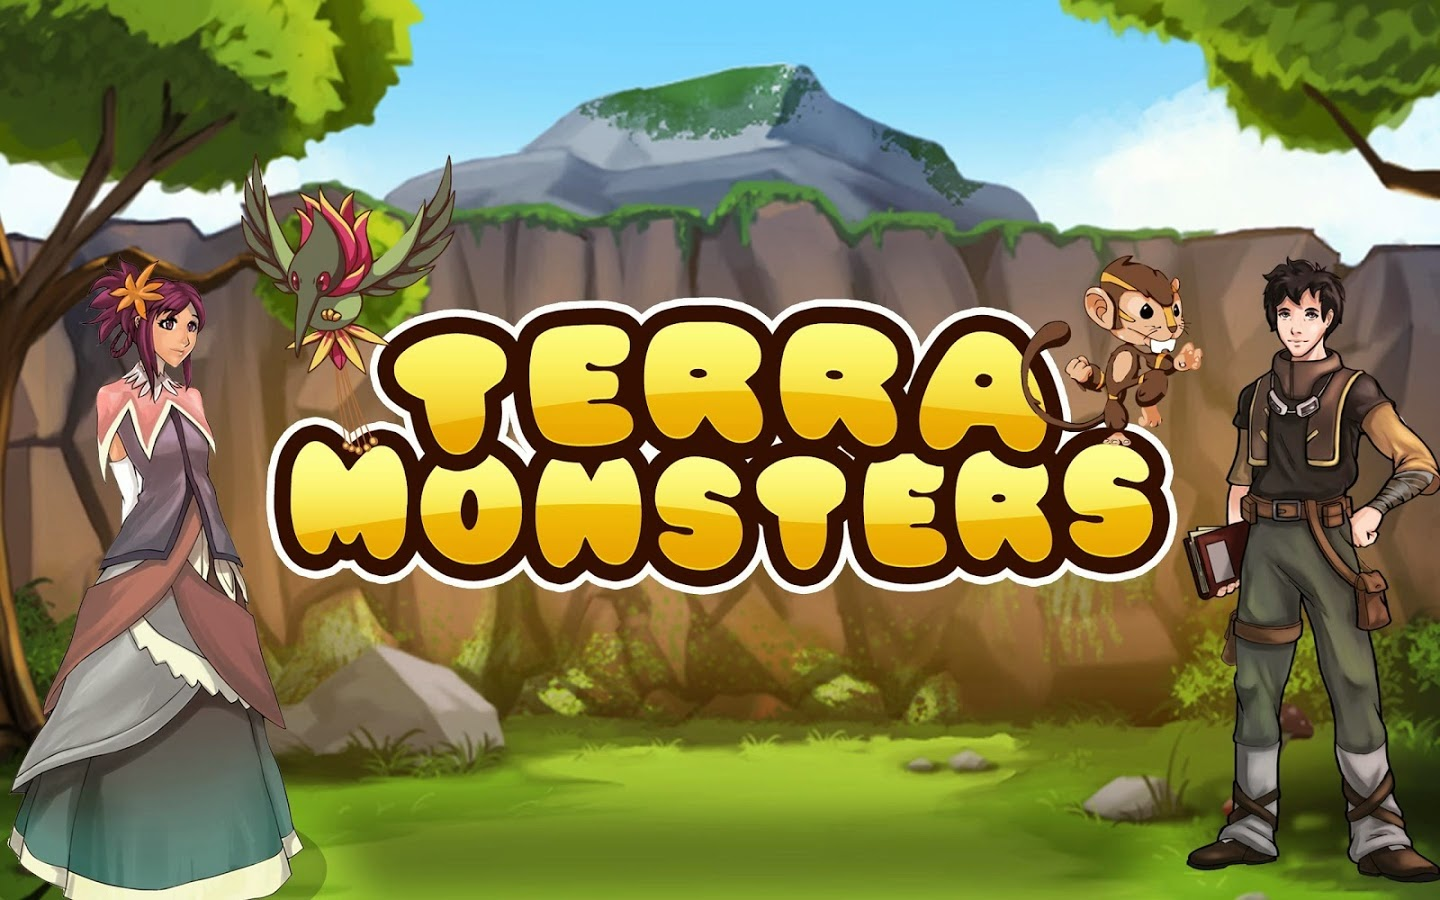 APK Cracked Games - Lastest Android Cracked Games: Terra